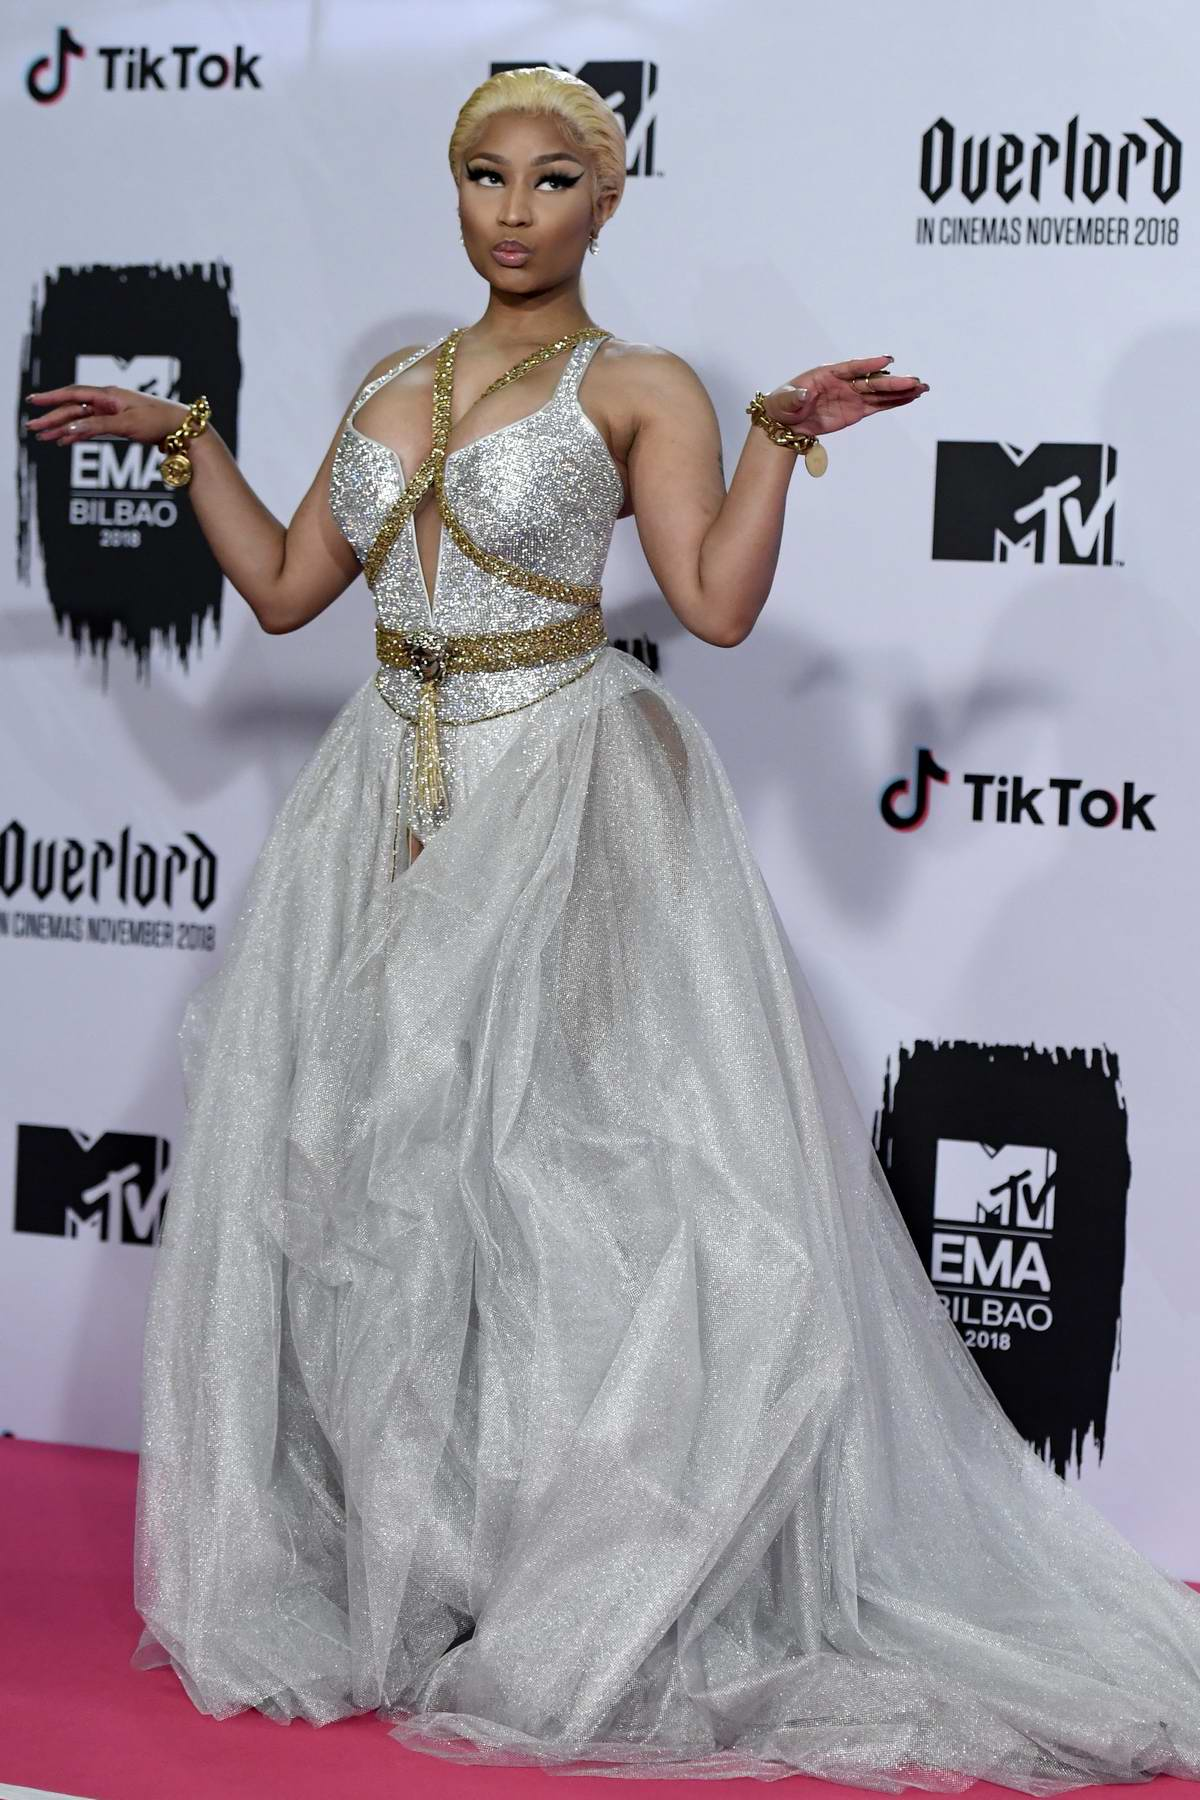 Nicki Minaj attends the MTV EMAs 2018 at the Bilbao Exhibition Centre in Bilbao, Spain